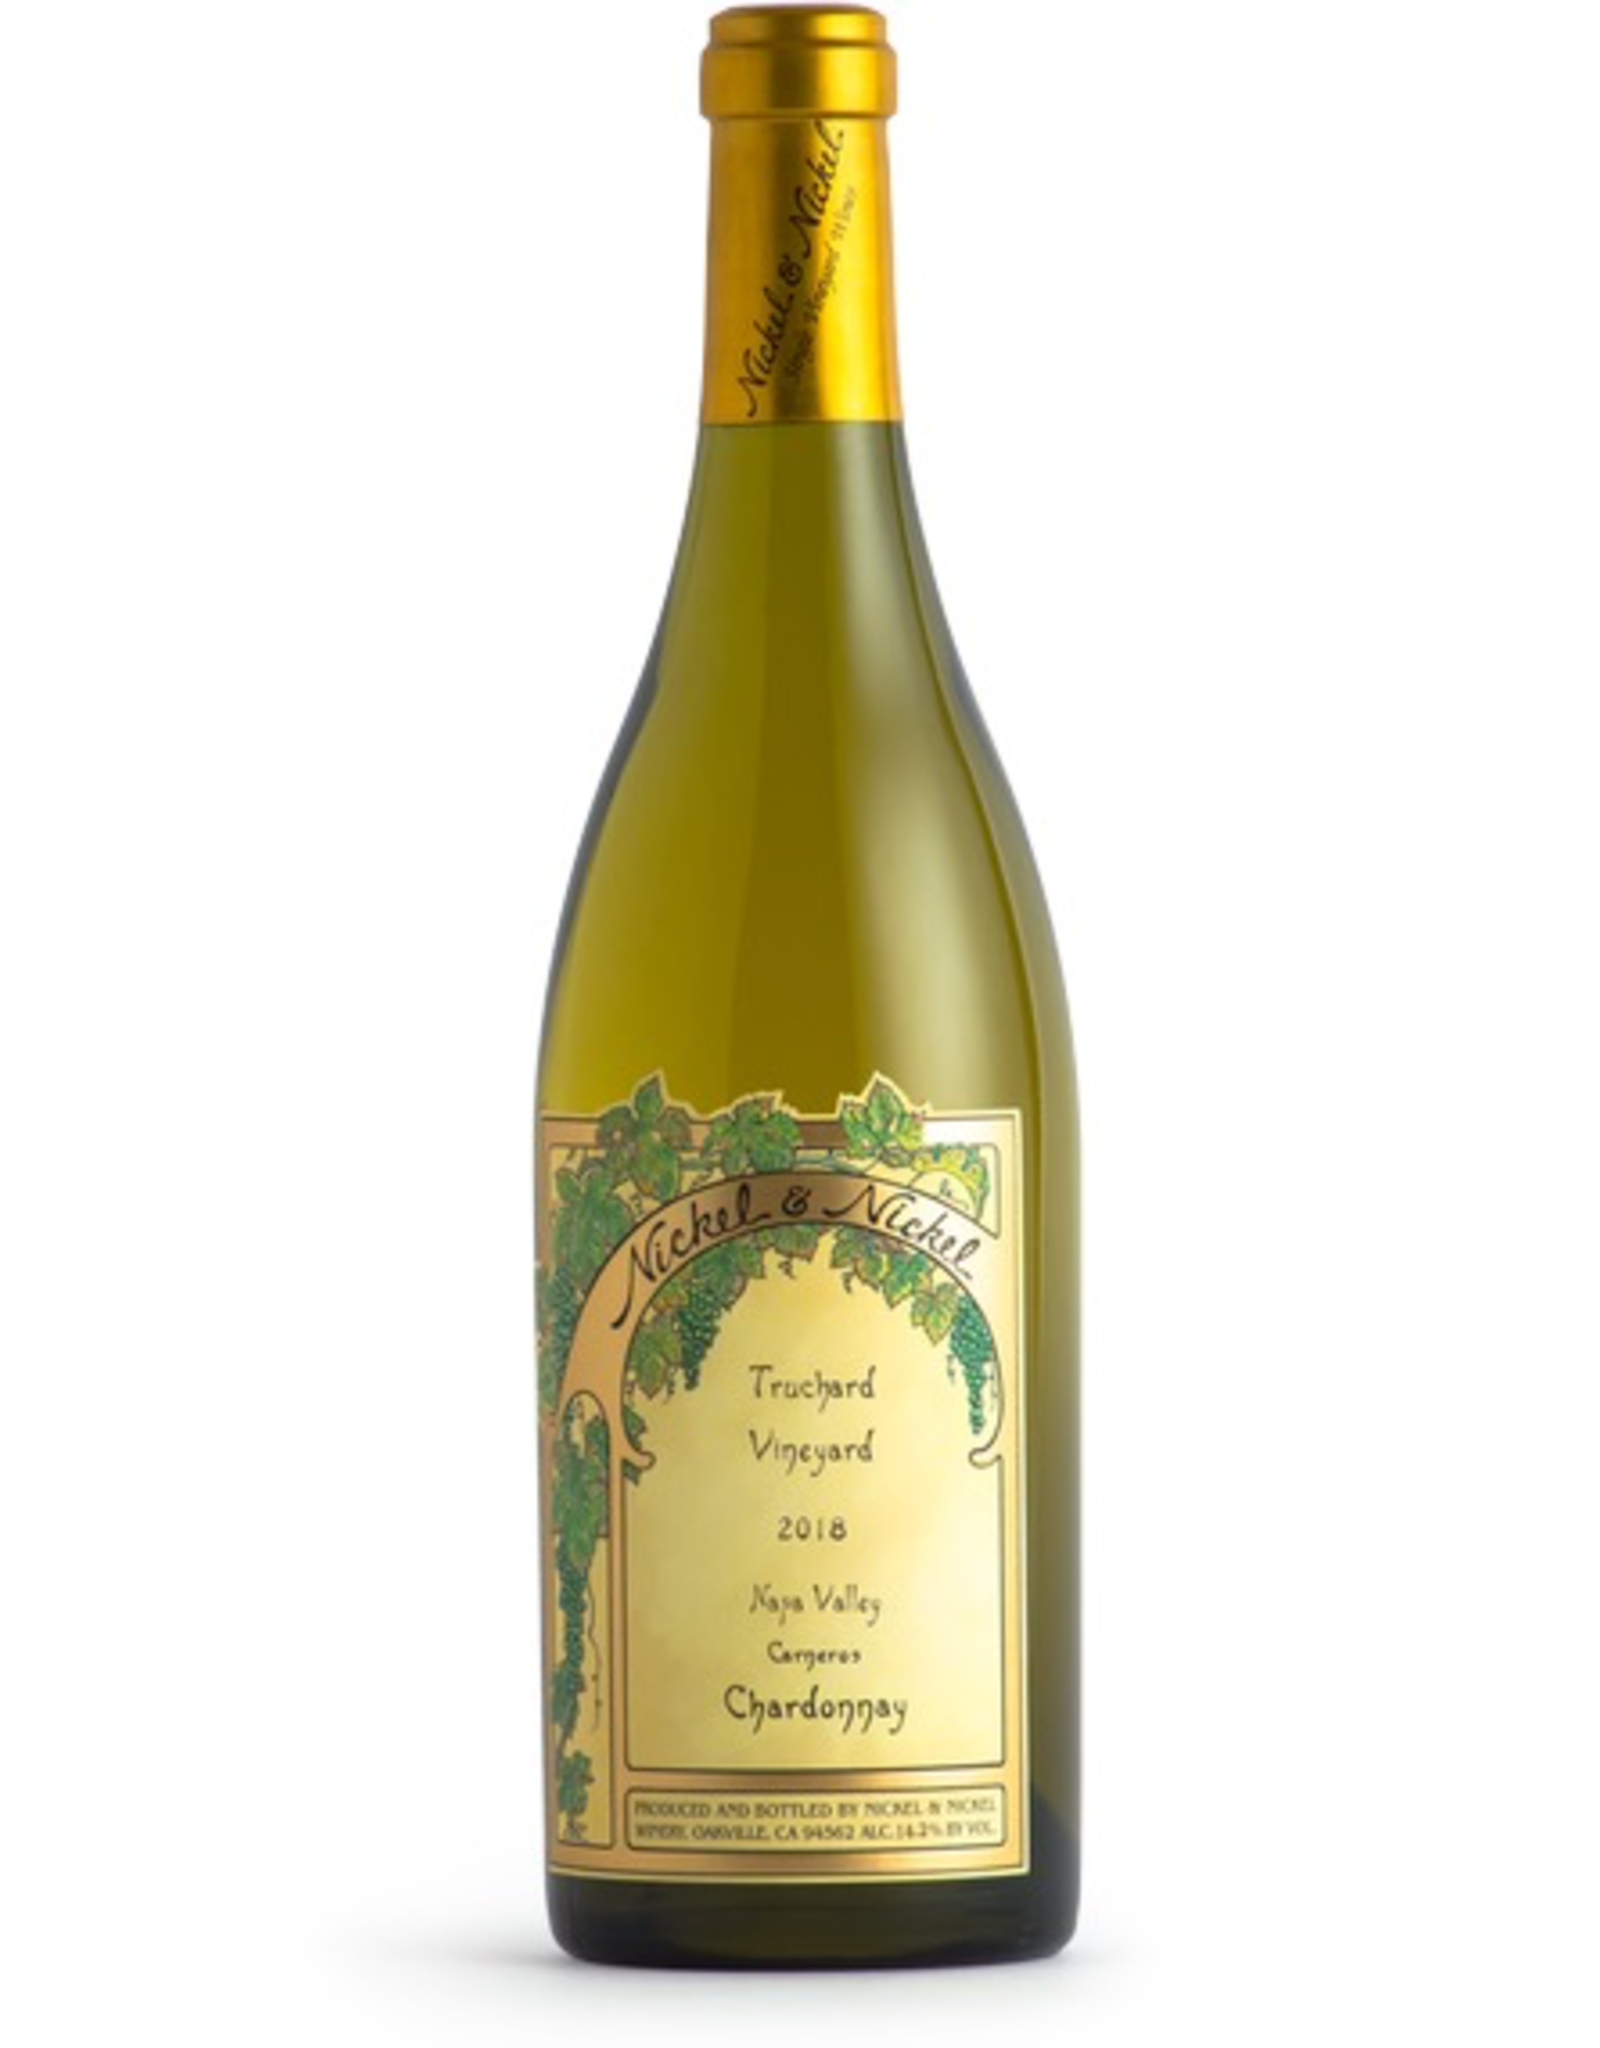 White Wine 2018, Nickel & Nickel Truchard Vineyard, Chardonnay, Carneros, Sonoma, California, 14.1% Alc, CTna